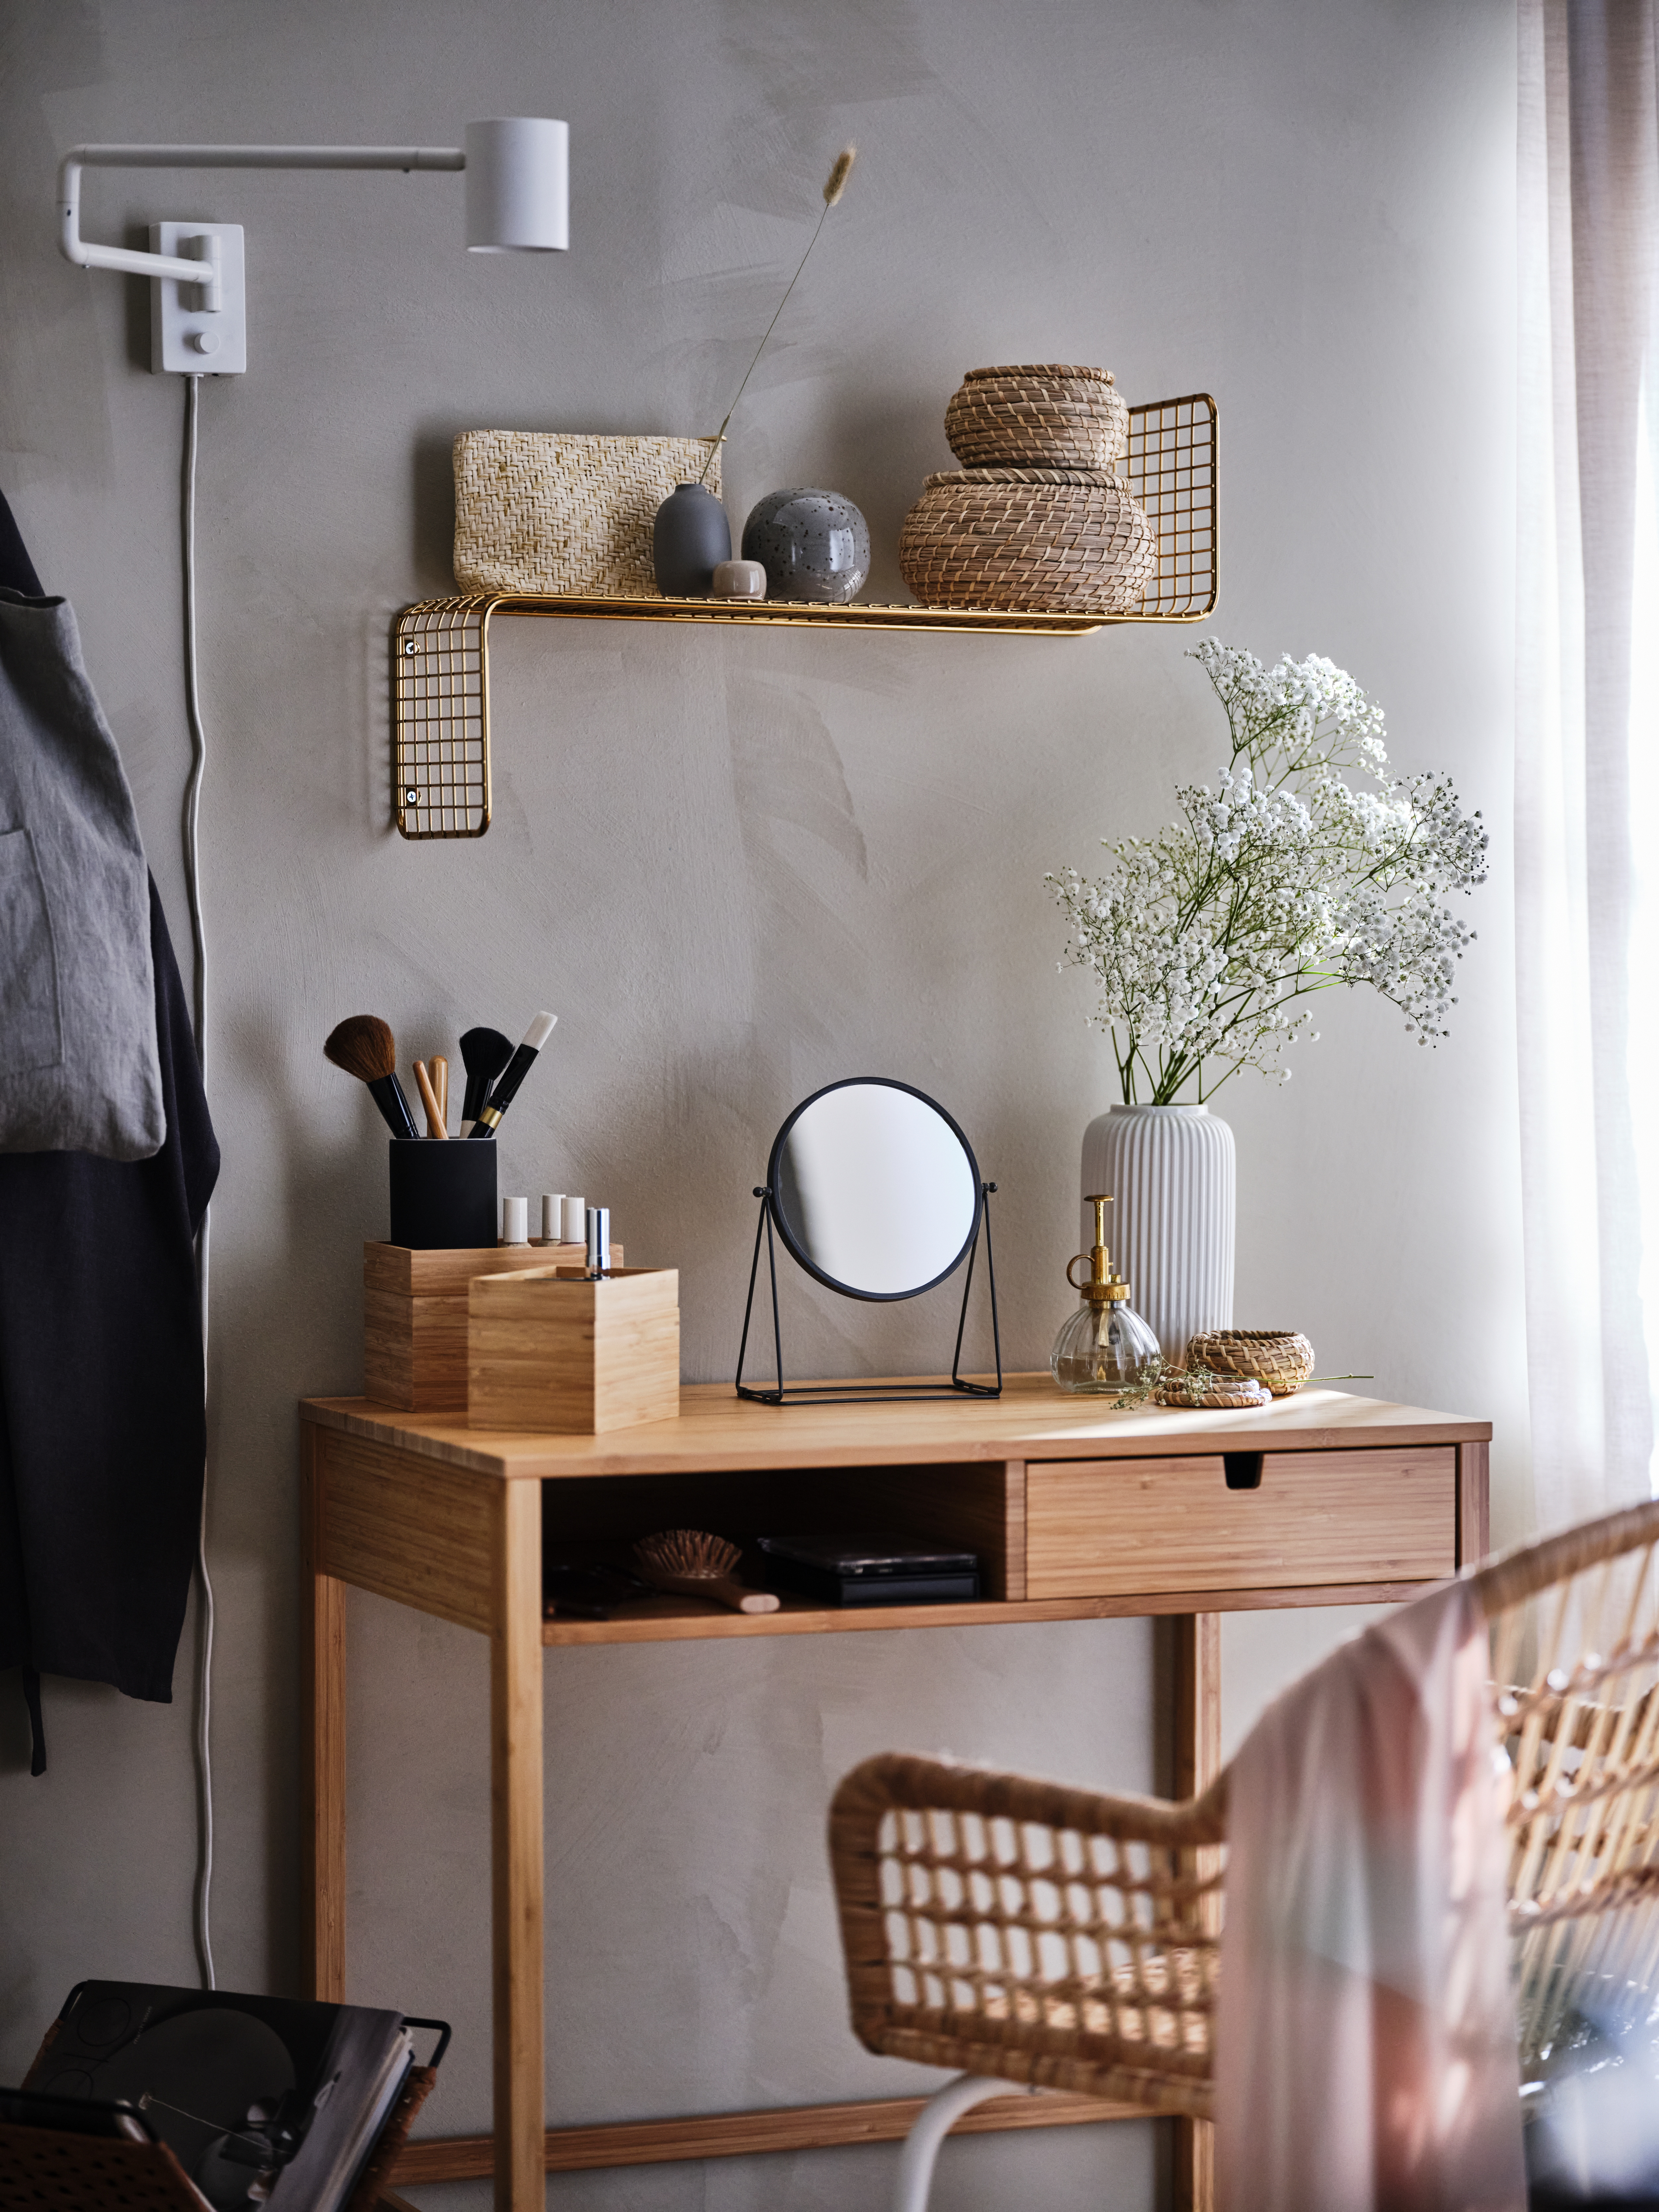 Beauty corner with a LASSBYN mirror, a vase with flowers and make-up accessories in DRAGAN bamboo boxes, set on a small desk.